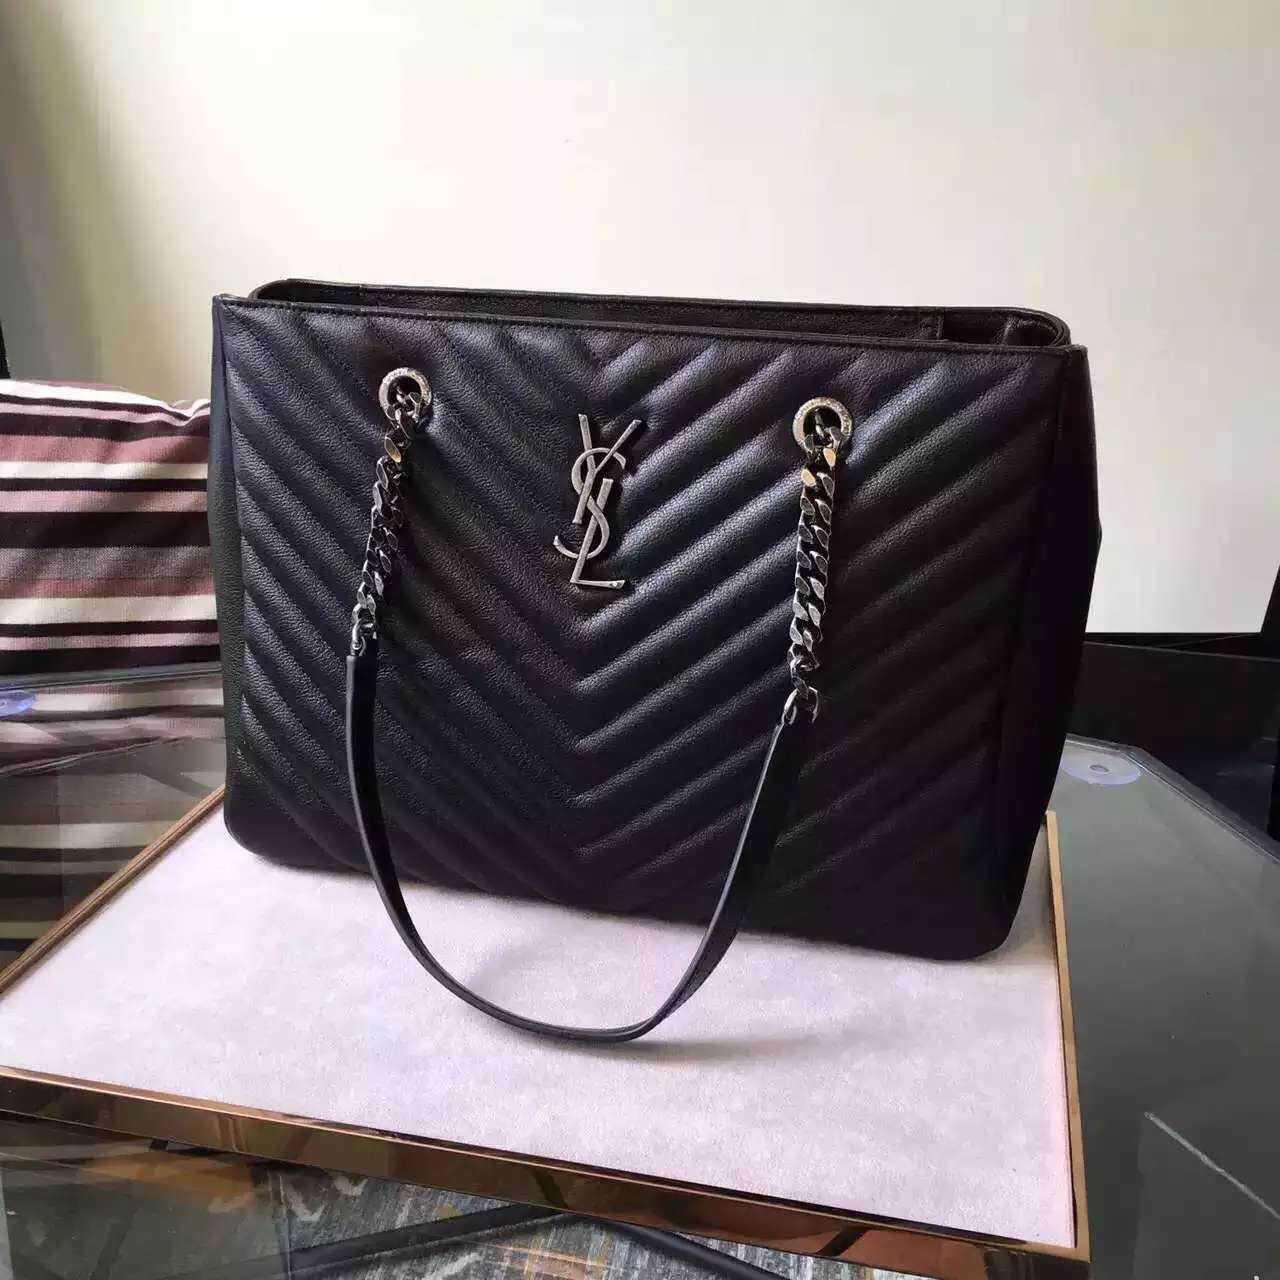 New Arrival!2016 Cheap YSL Out Sale with Free Shipping-Saint Laurent Classic Monogram Shopping Bag in Black MATELASSÉ Leather